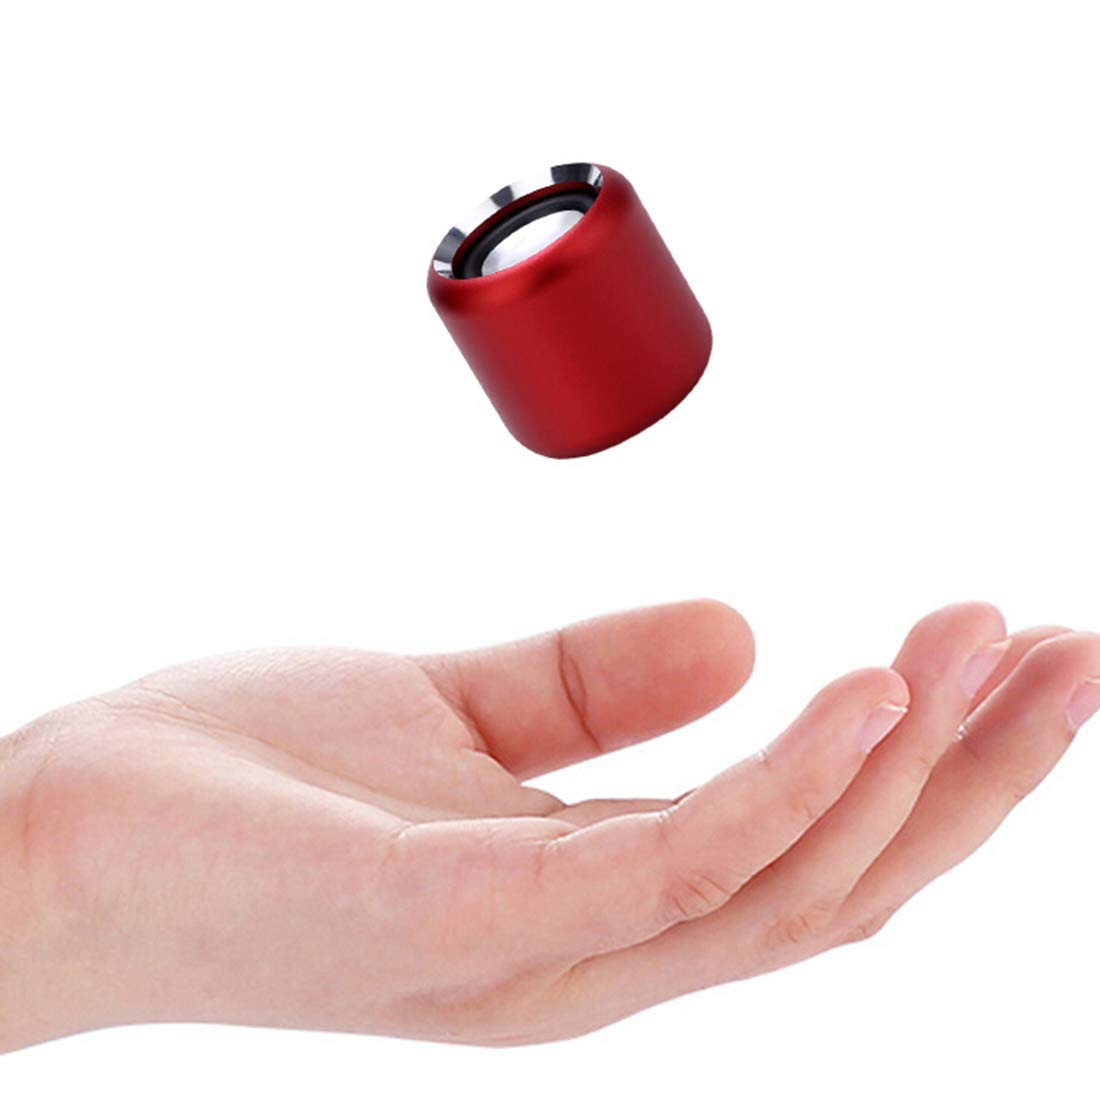 Wireless Mini Bluetooth Speaker Small Loud Portable Speakers for Home, Outdoors, Travel with 5-Hour Playtime, Subwoofer, Enhanced Bass (Red)